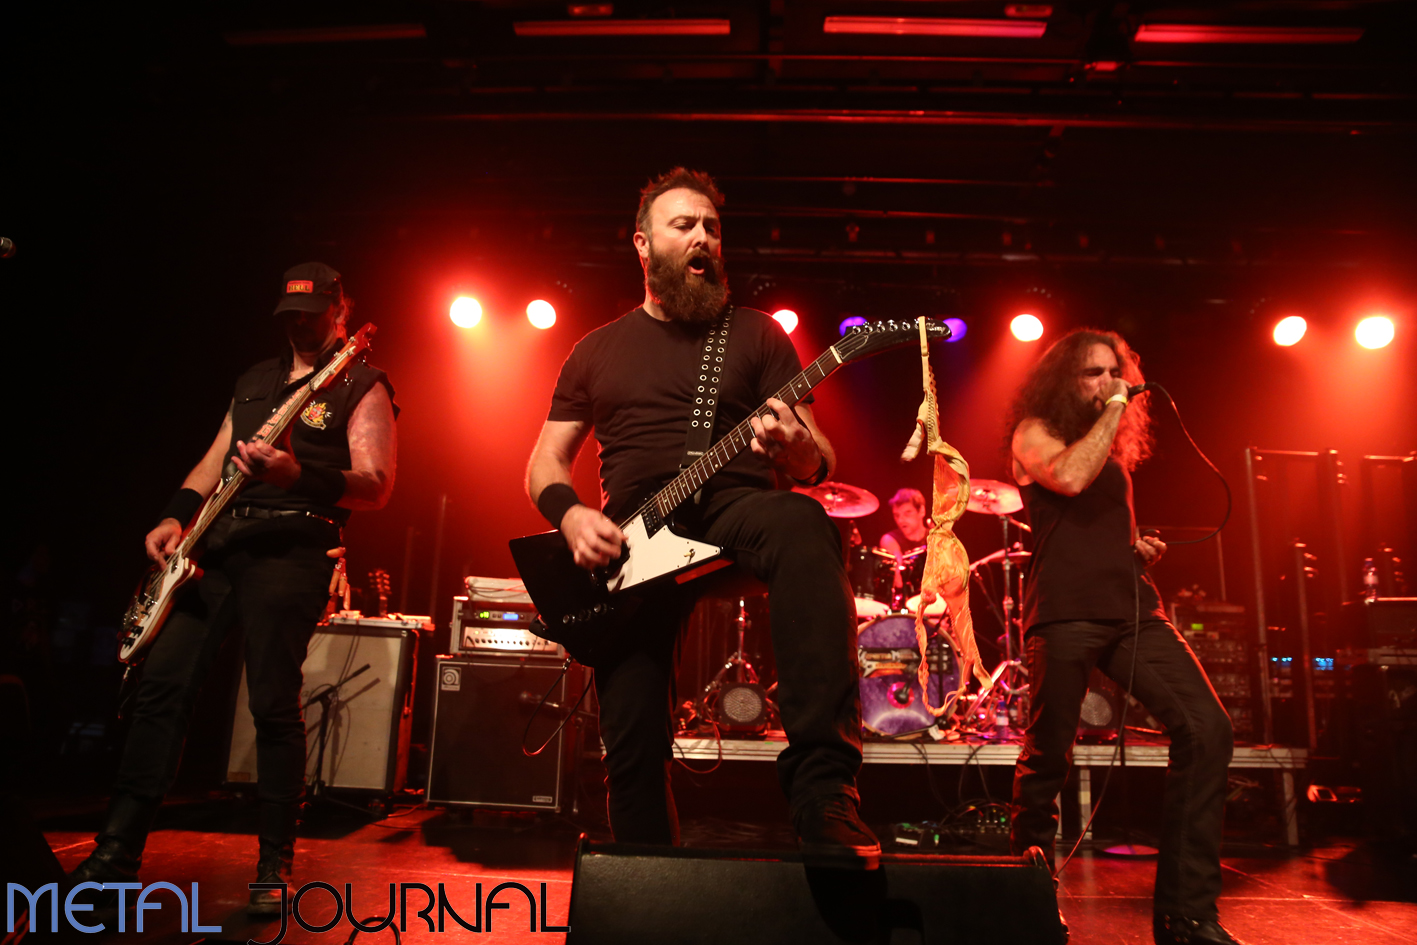 the hellectric devilz metal journal 2018 pic 1